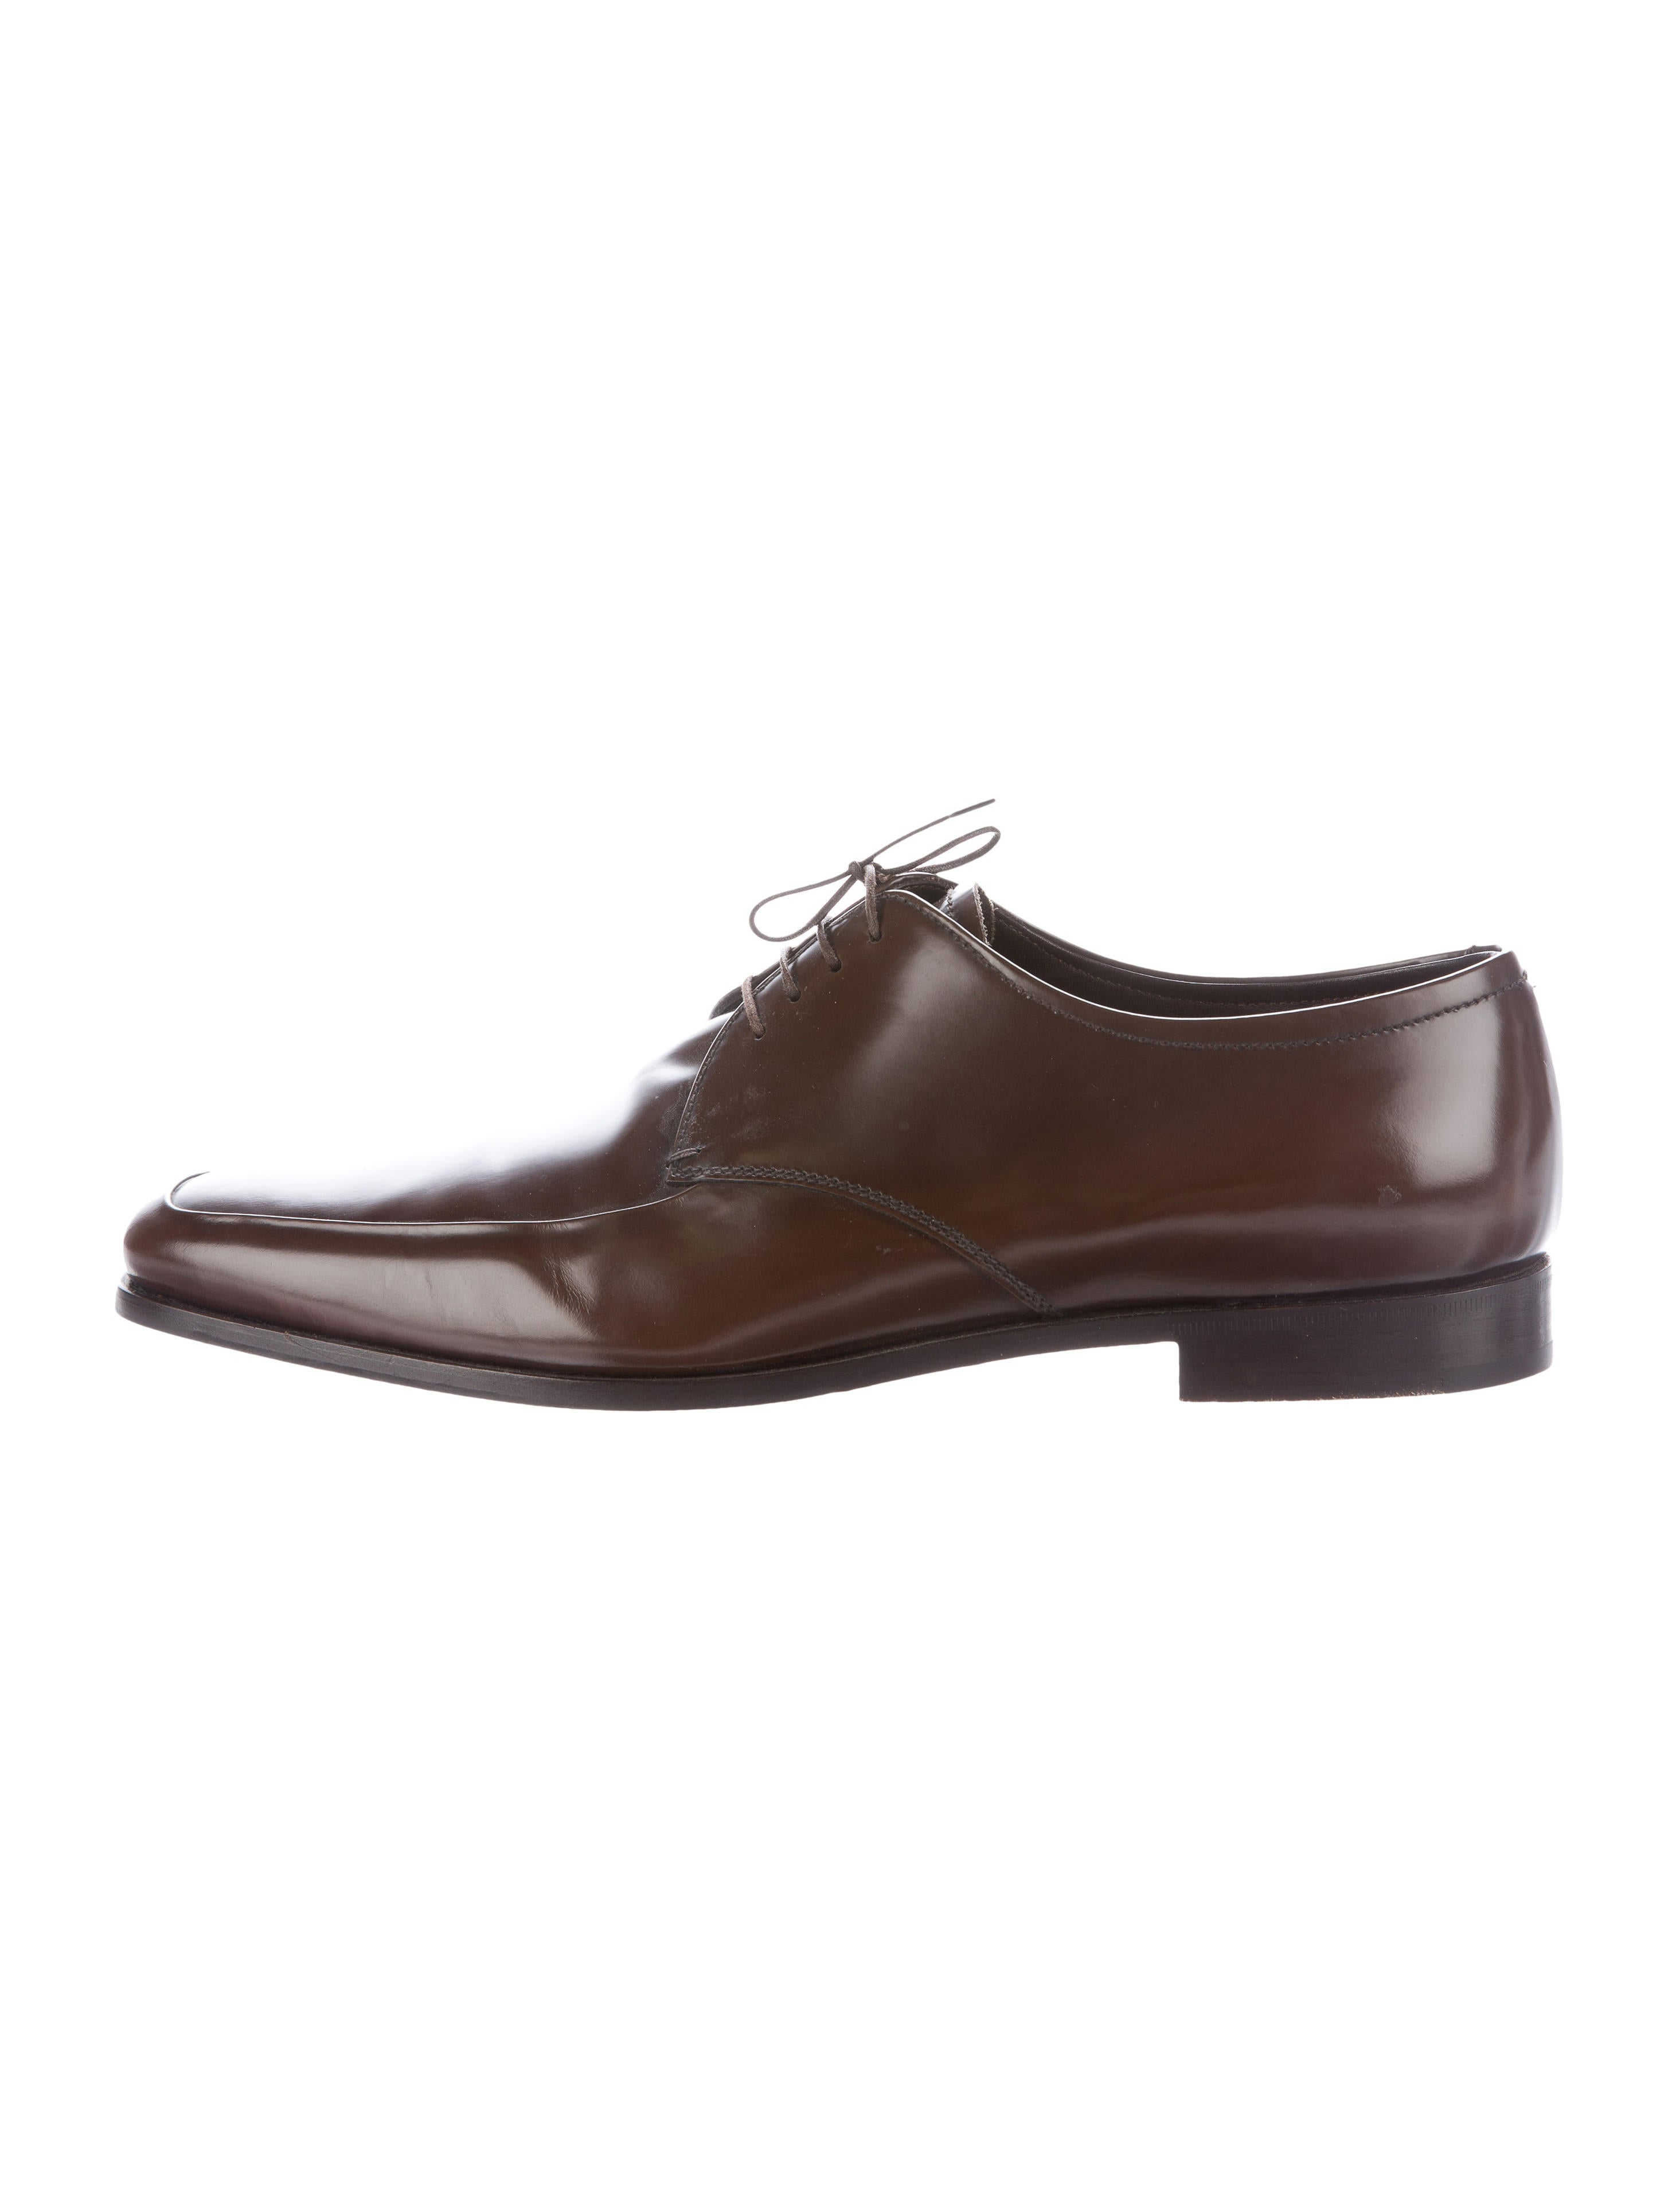 prada leather derby shoes shoes pra117391 the realreal